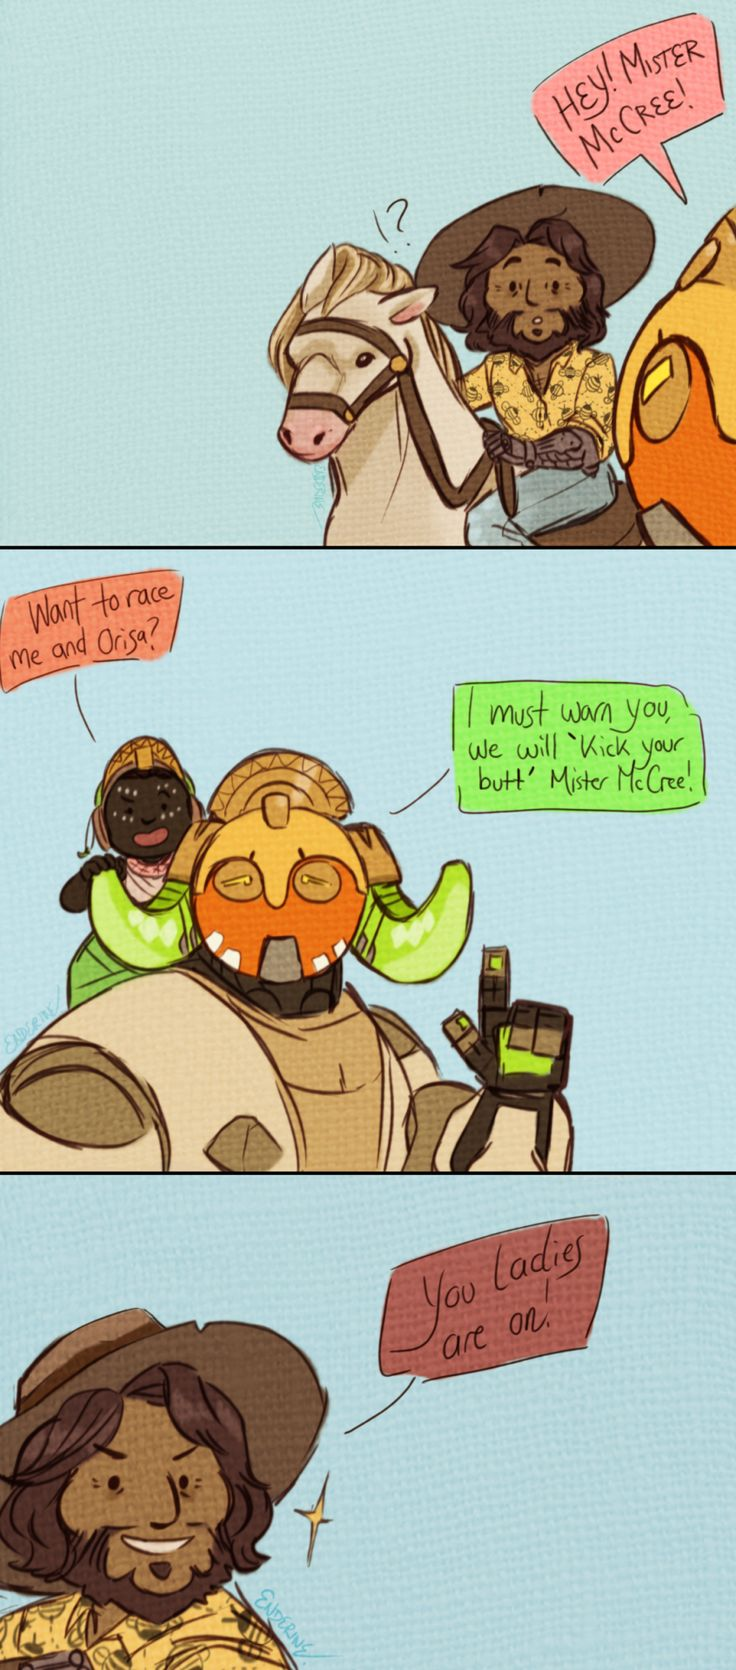 blacksmiley - bumblecree: spoiler: they kicked his butt